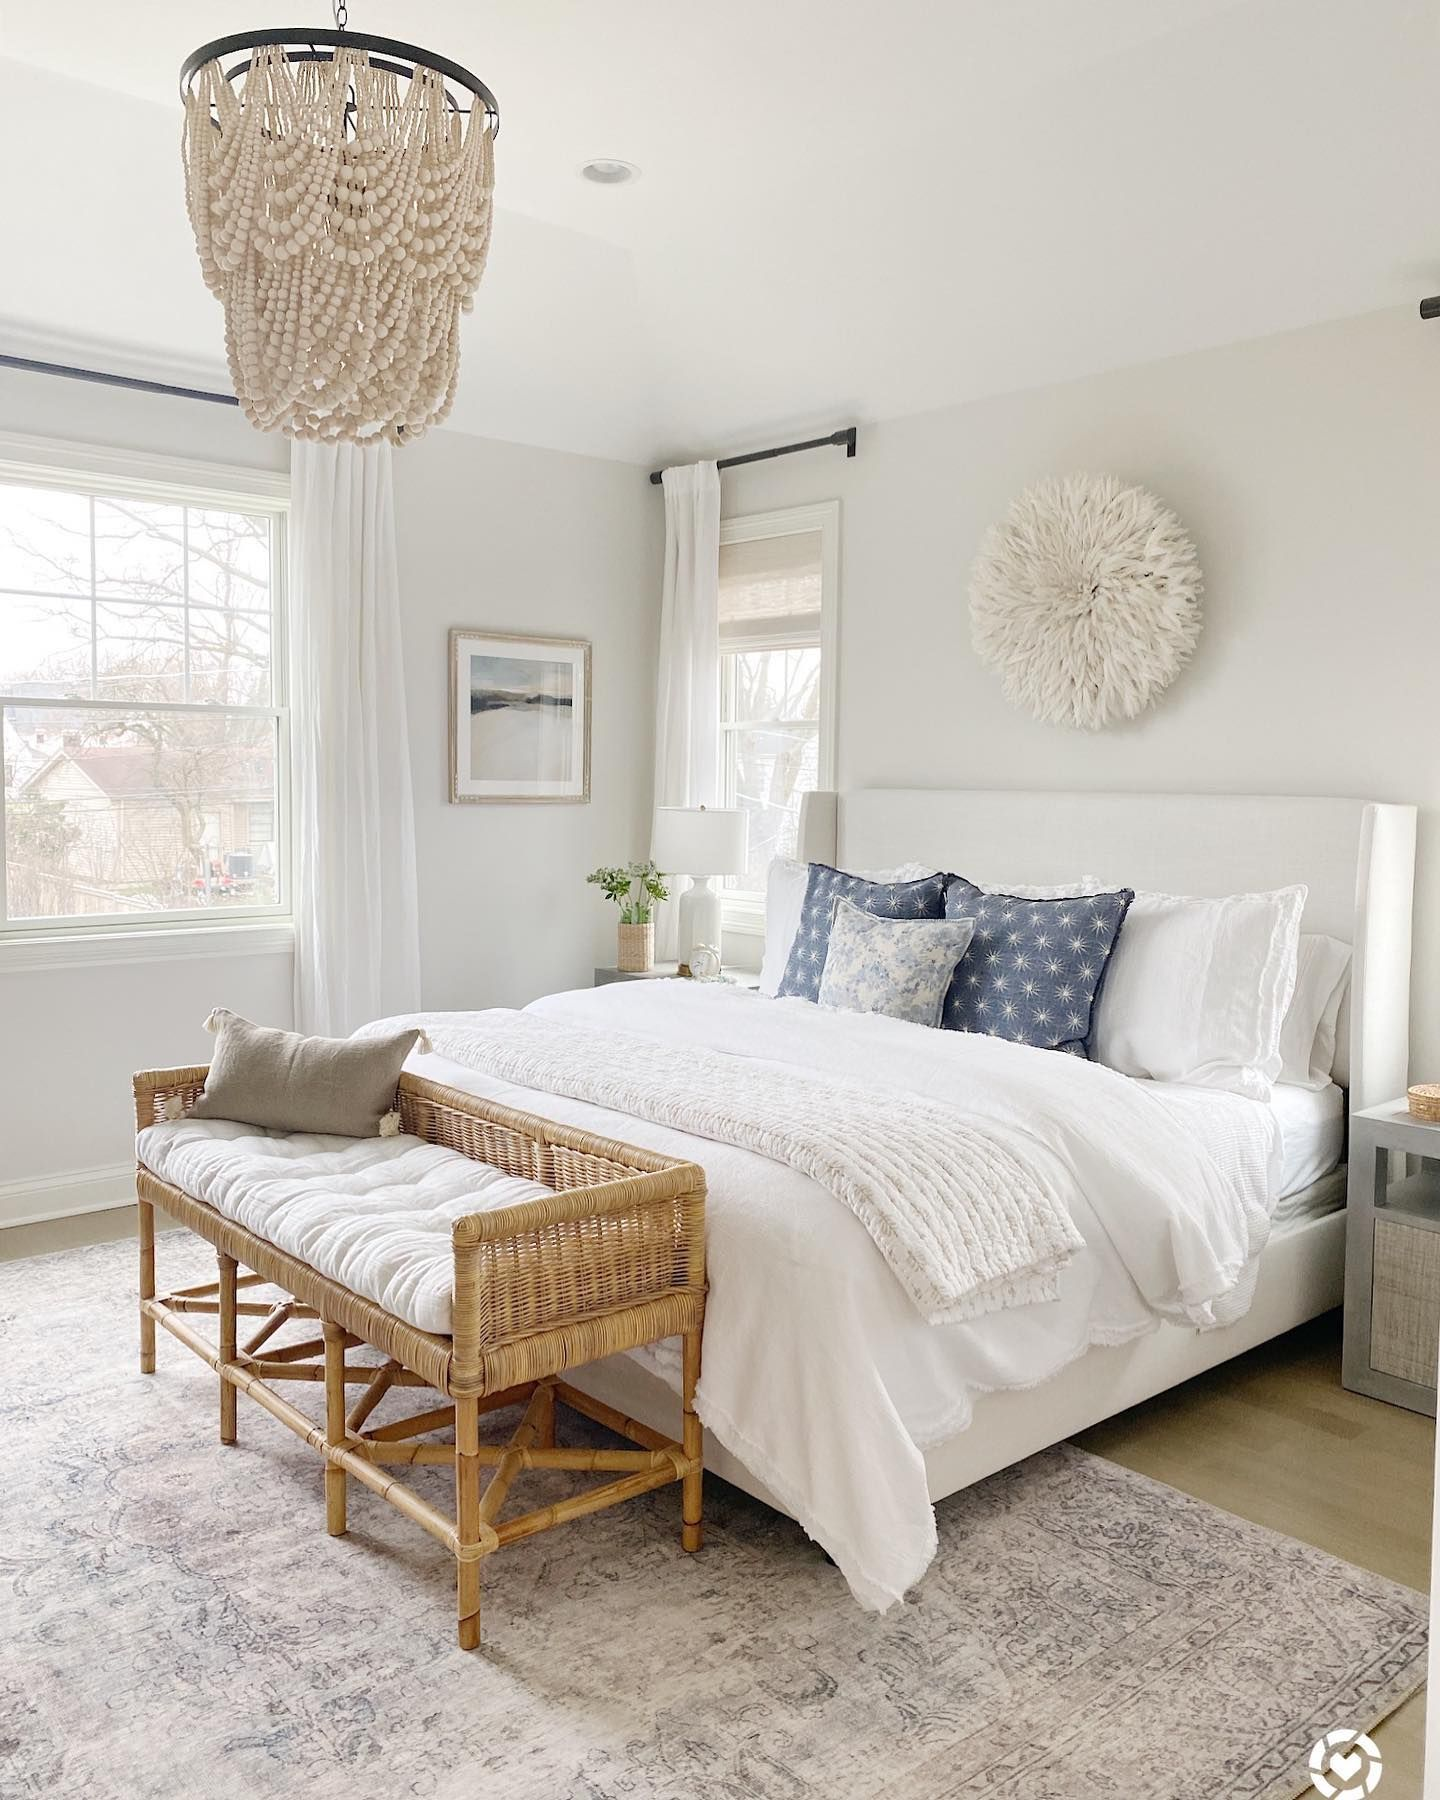 Creating Beautiful Spaces With Natural Seating From Serena Lily Life On Cedar Lane White Bedroom Decor Budget Home Decorating Hygge Home Interiors Pretty dubs master bedroom